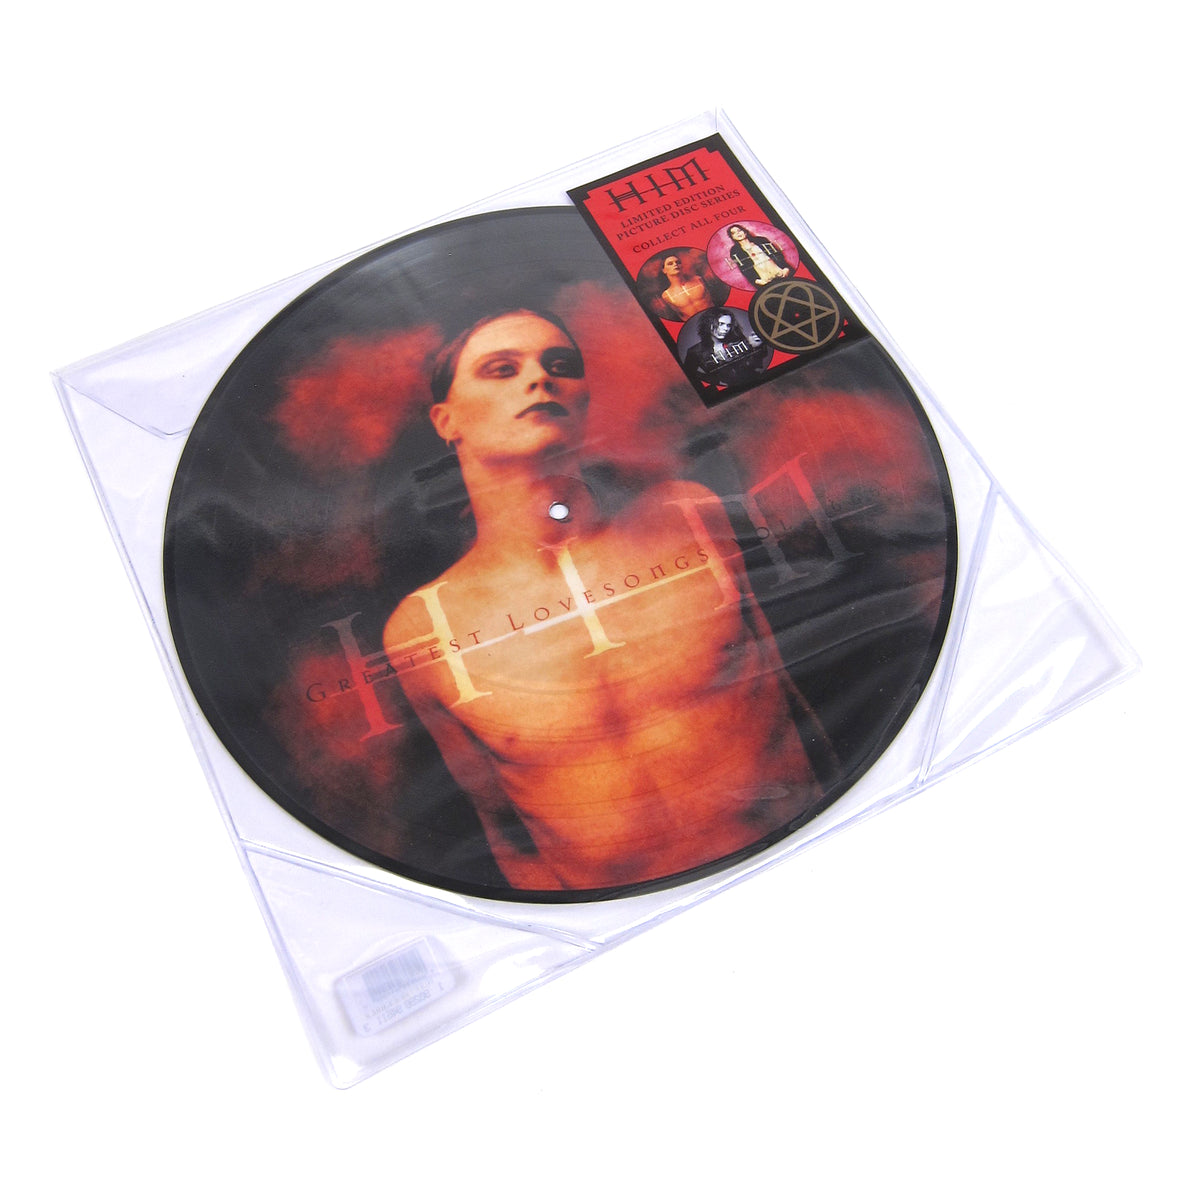 HIM: Greatest Love Songs Vol.666 (Pic Disc) Vinyl LP